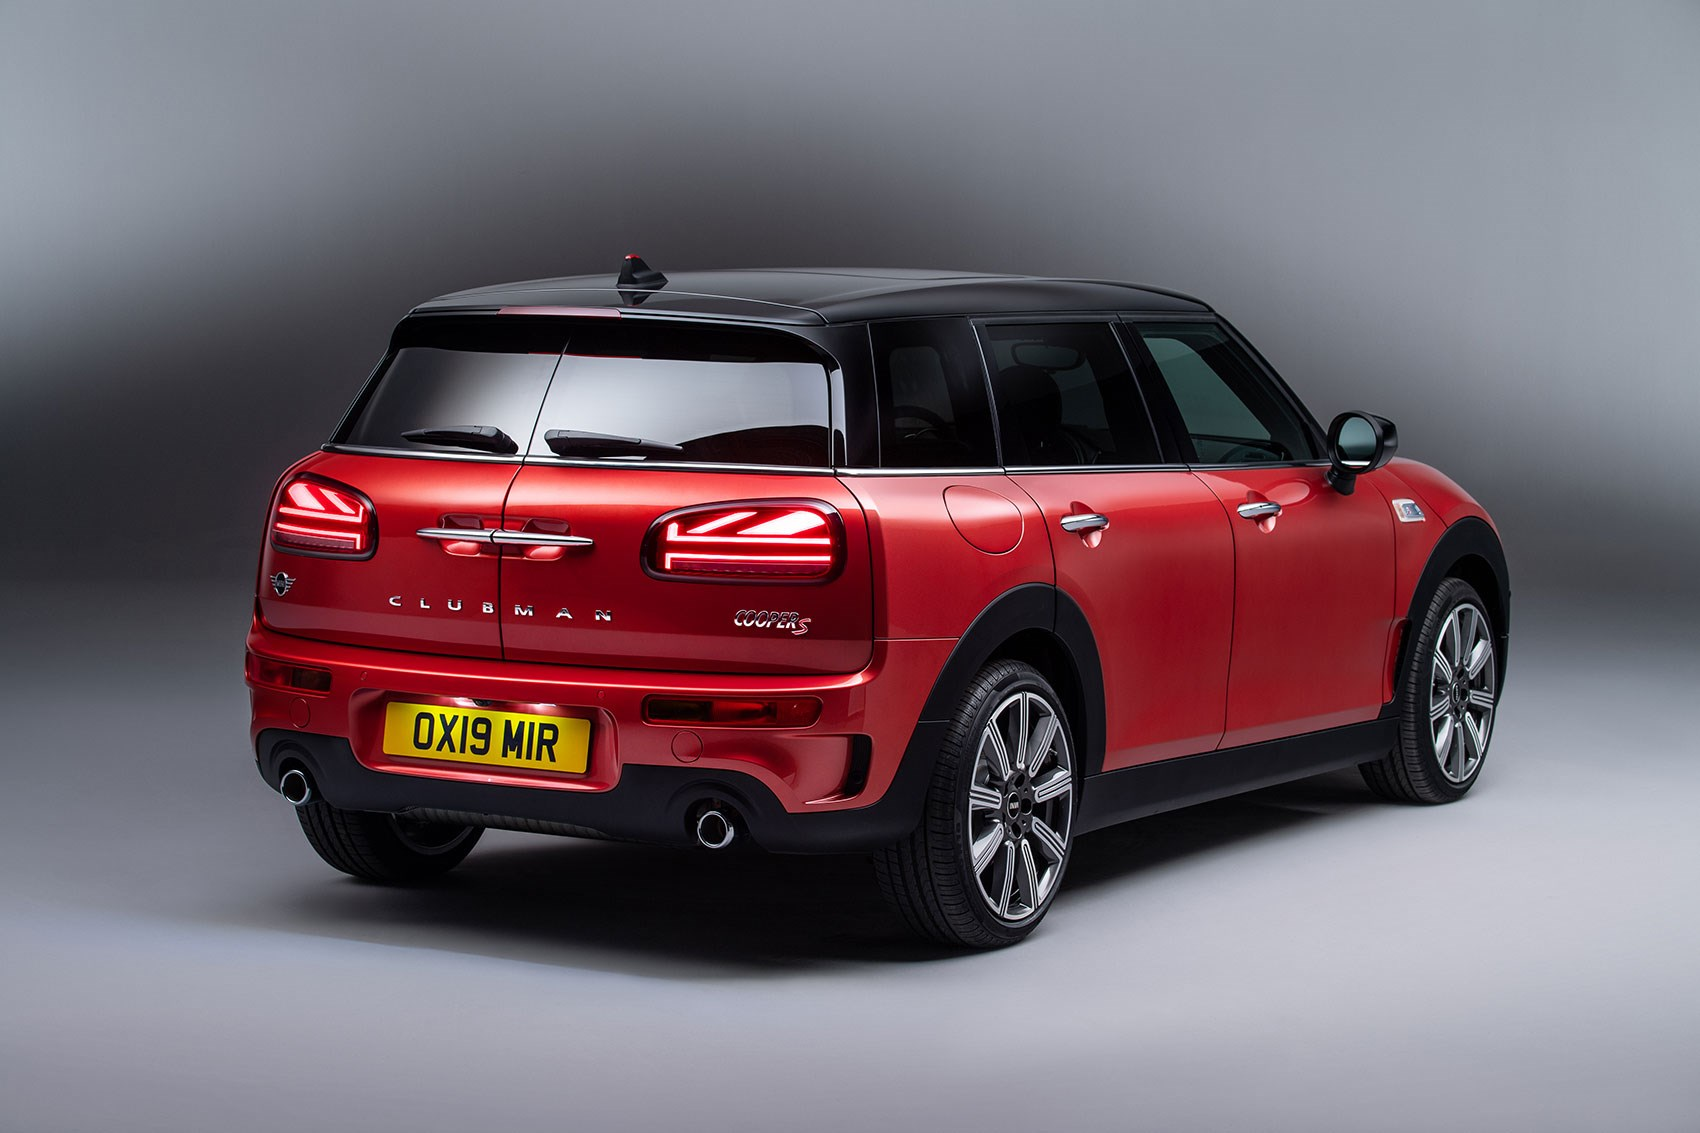 Mini Clubman: Price, Specs And Info